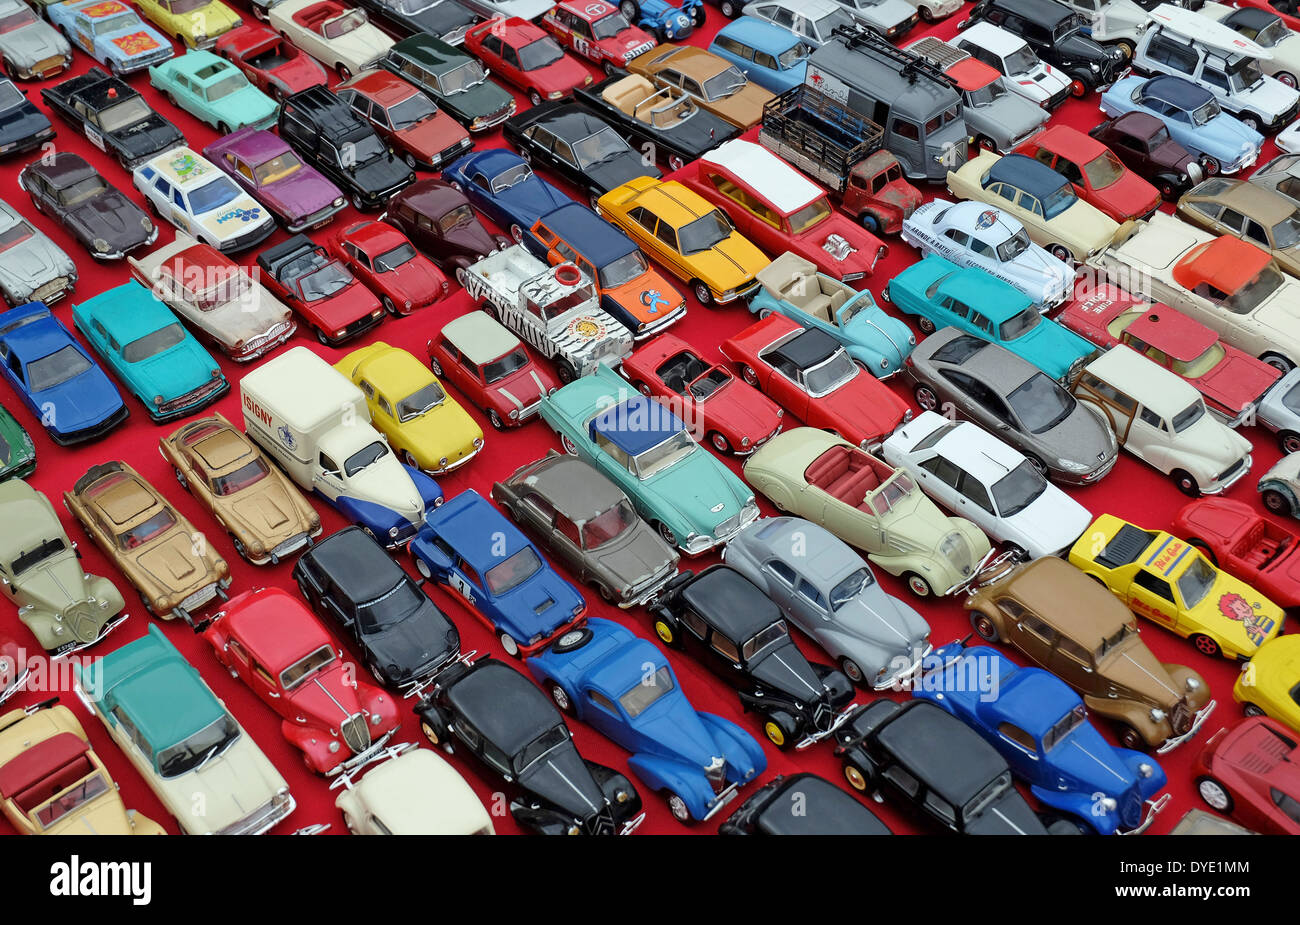 toy cars on french flea market car boot stall, normandy, france - Stock Image